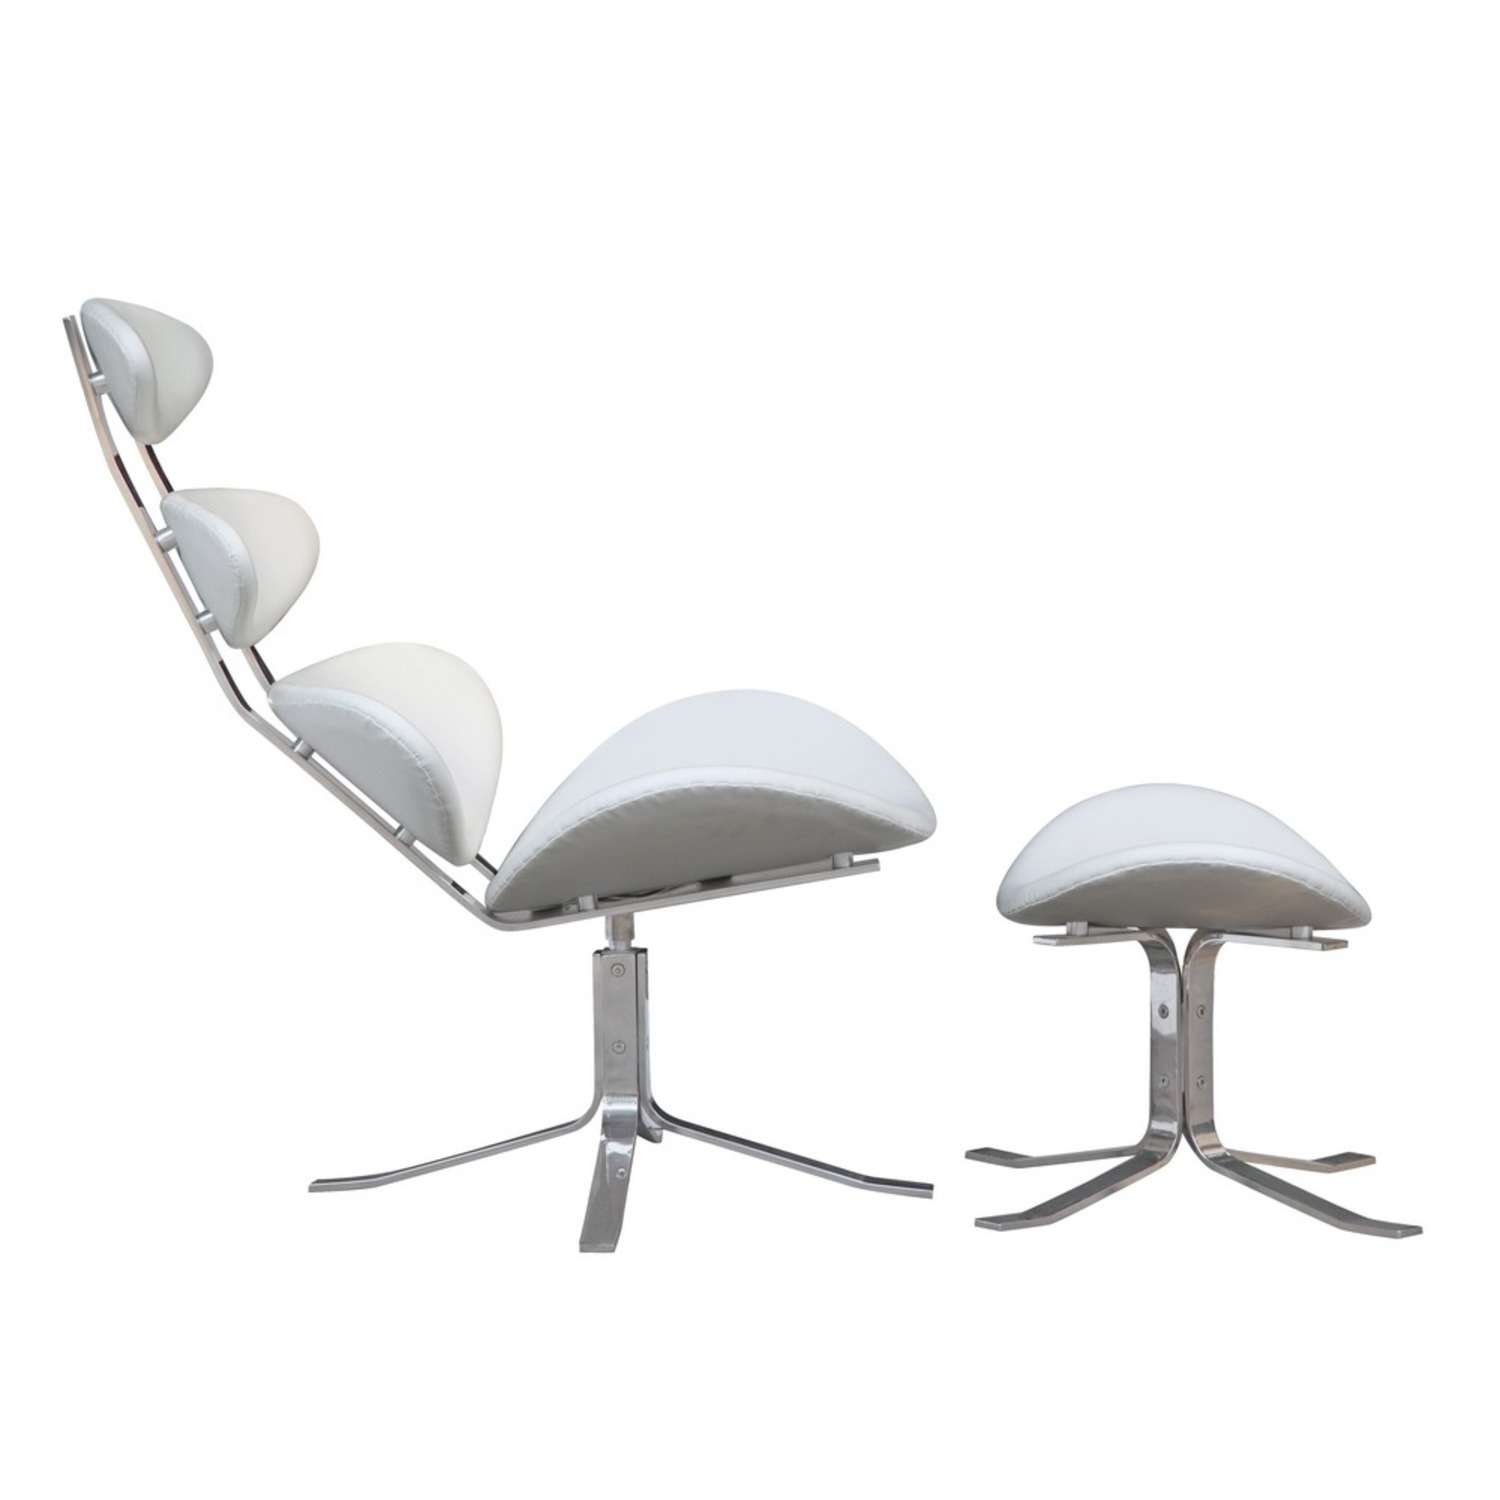 Chair & Ottoman In White Leather Sculptured Form - image-1